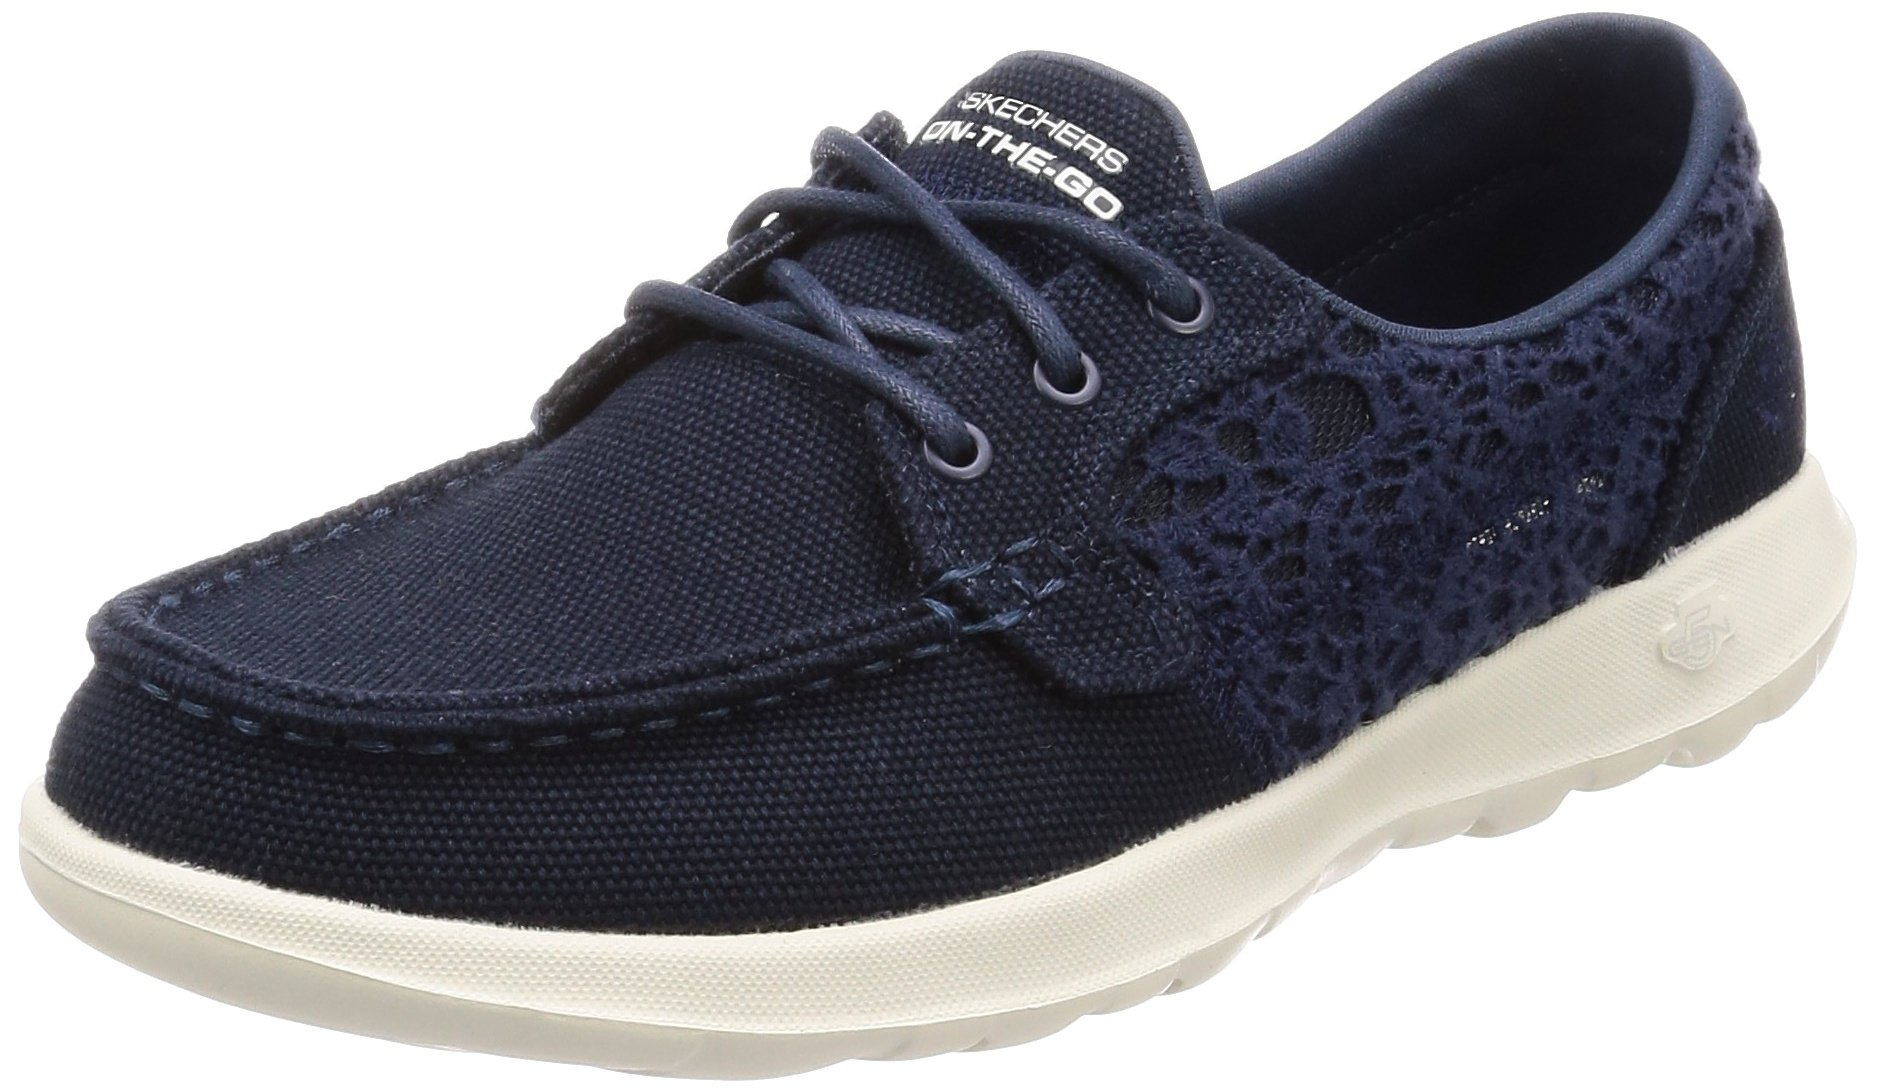 Skechers Gowalk Lite - Mira Navy Womens Boat Shoes Size 9M